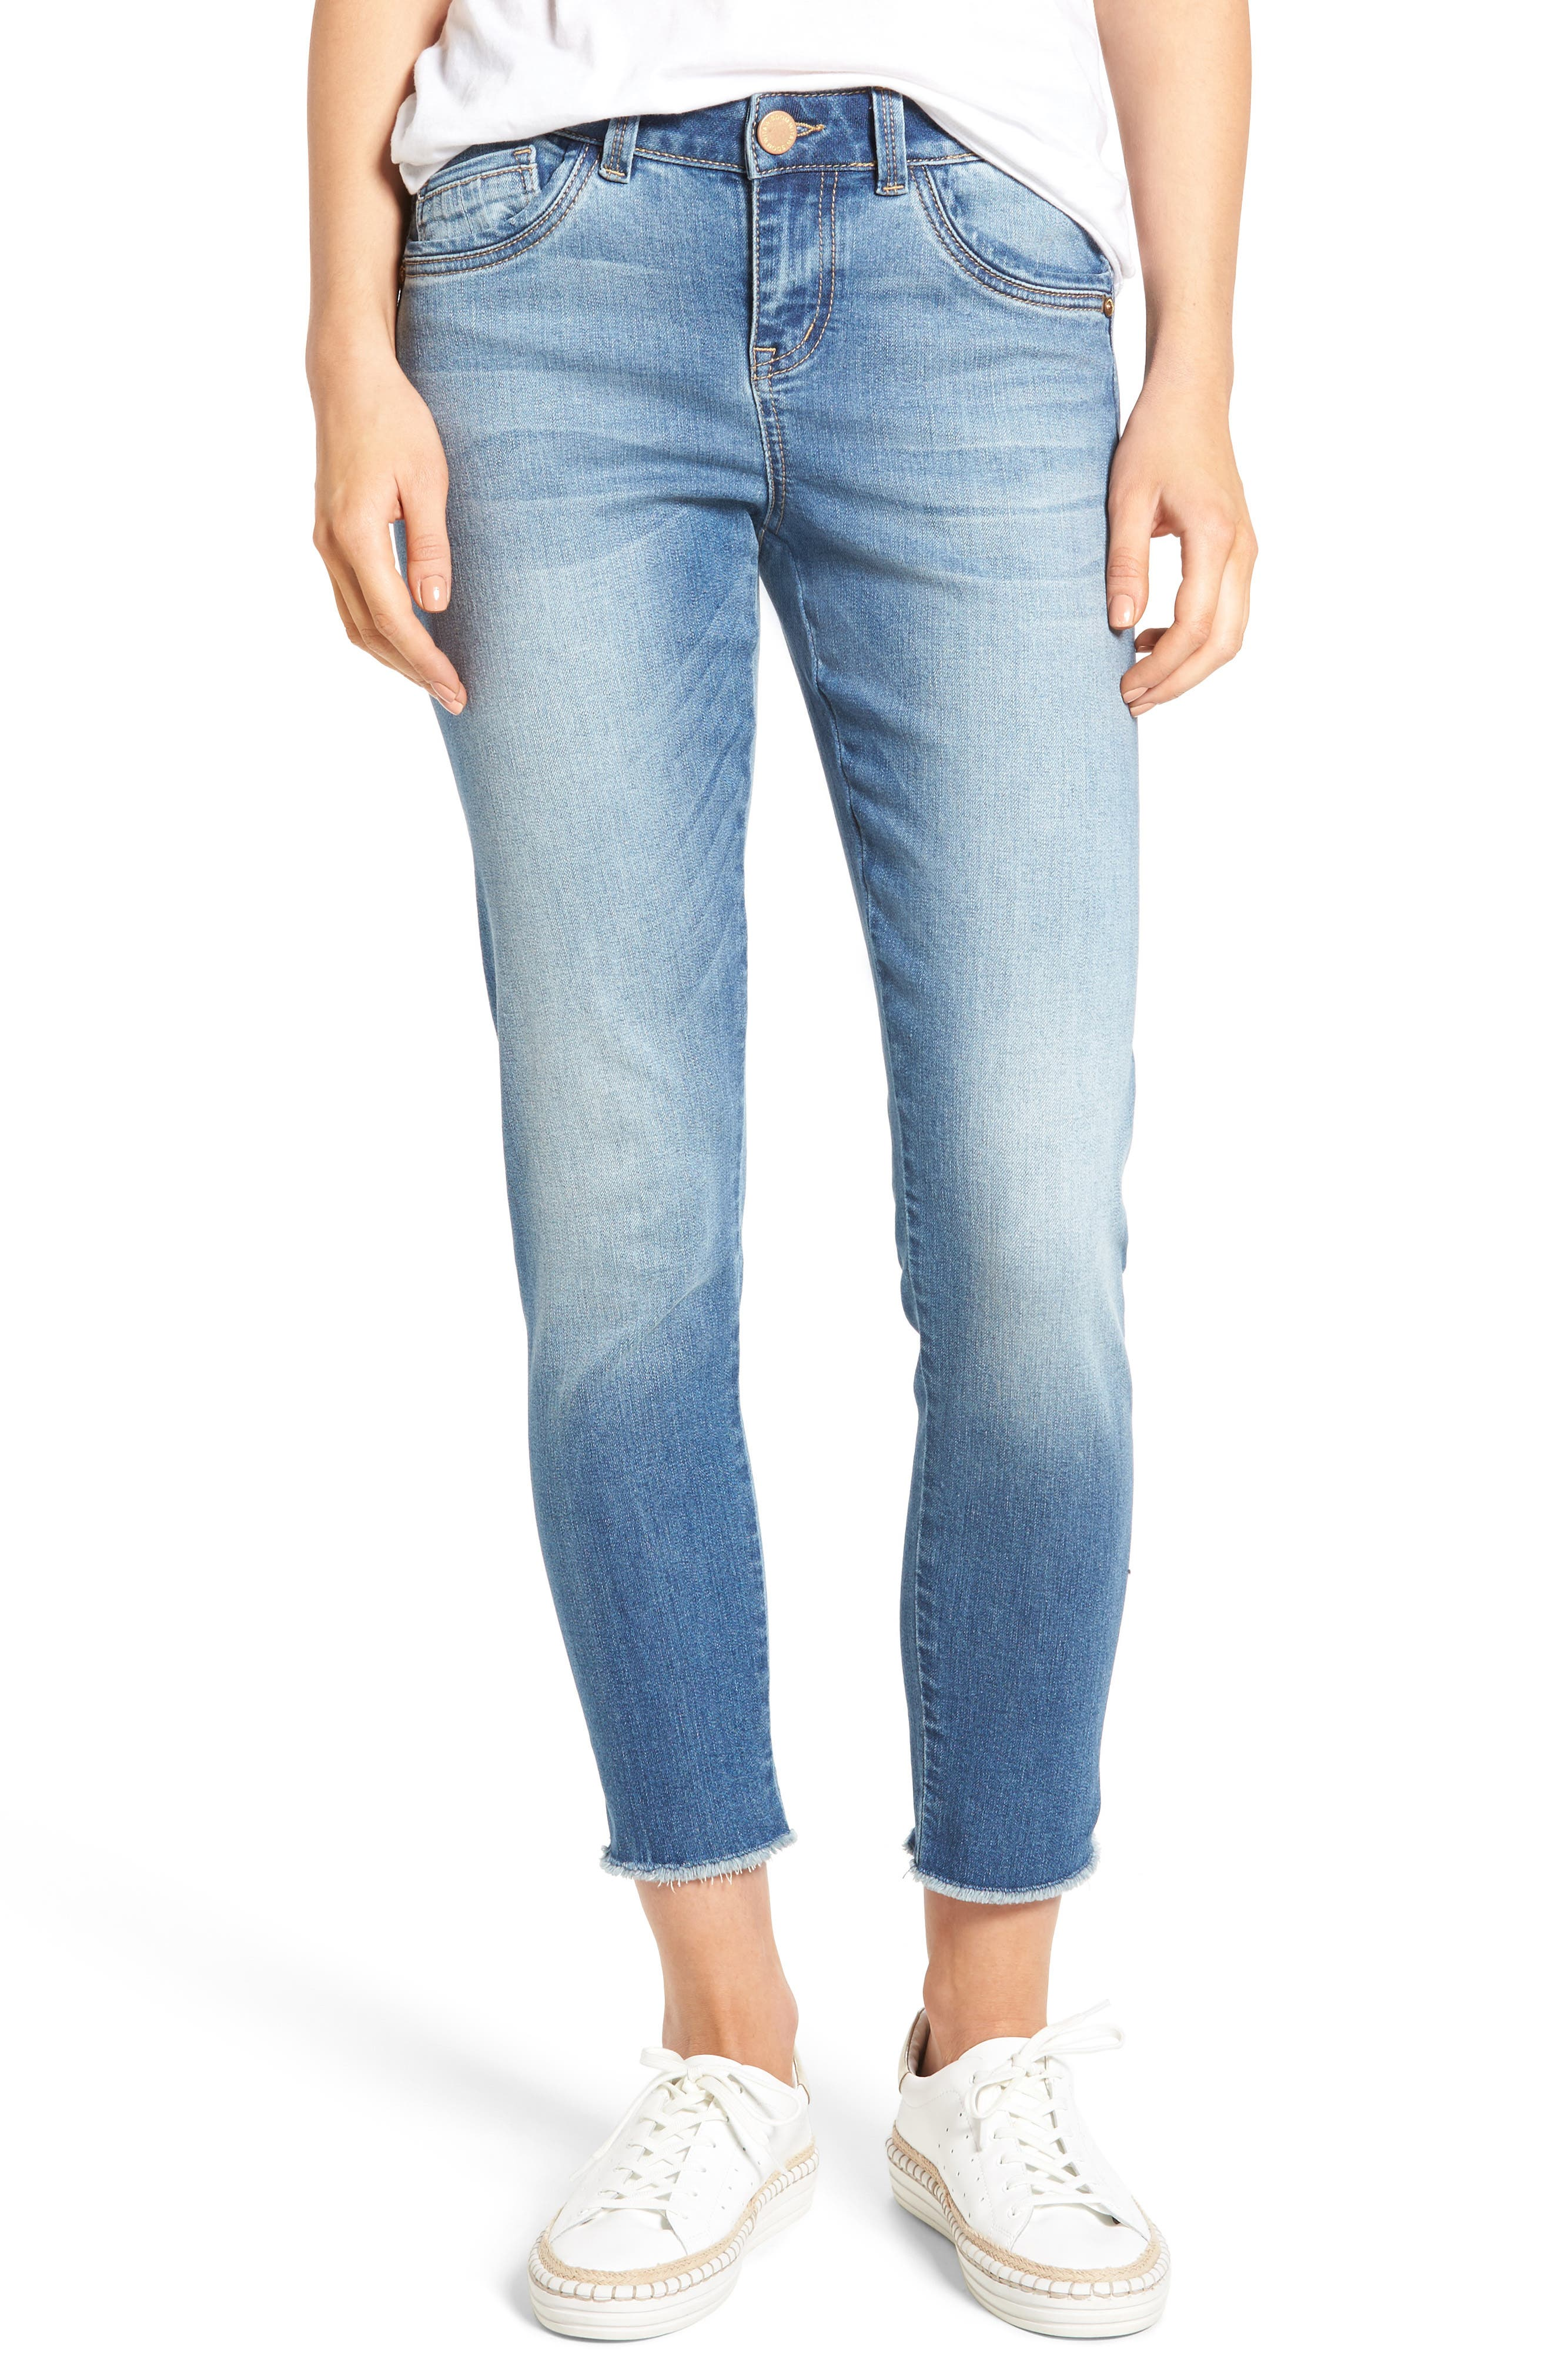 Wit & Wisdom Seamless Ankle Skimmer Jeans (Nordstrom Exclusive)